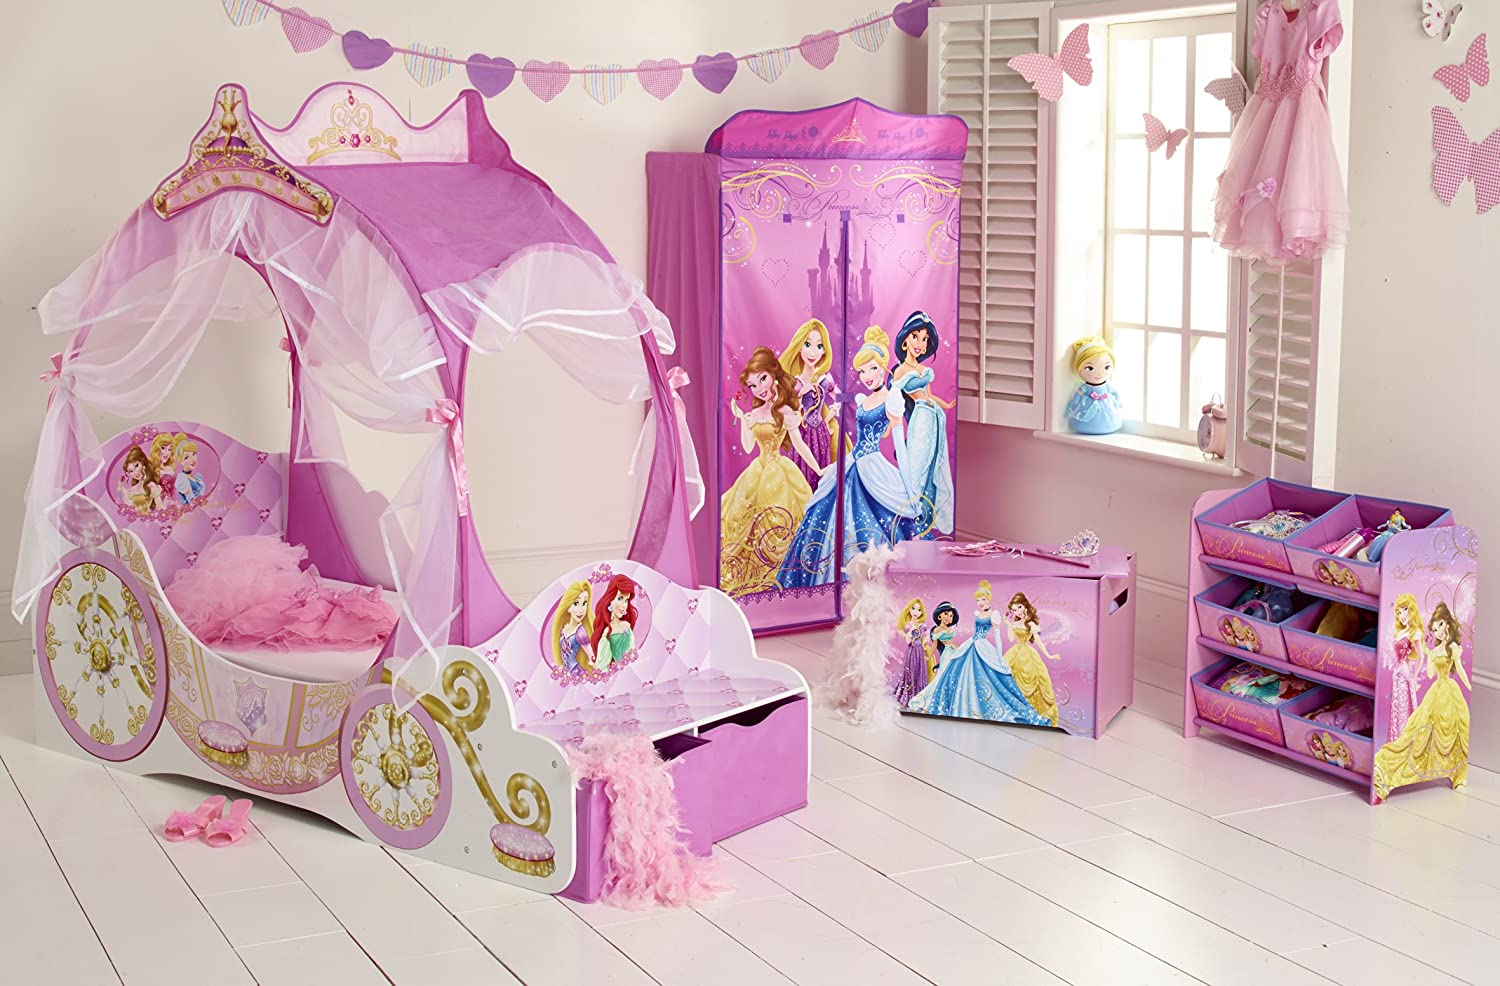 Disney Princess Carriage Kids Toddler Bed by HelloHome: Amazon.co.uk:  Kitchen & Home